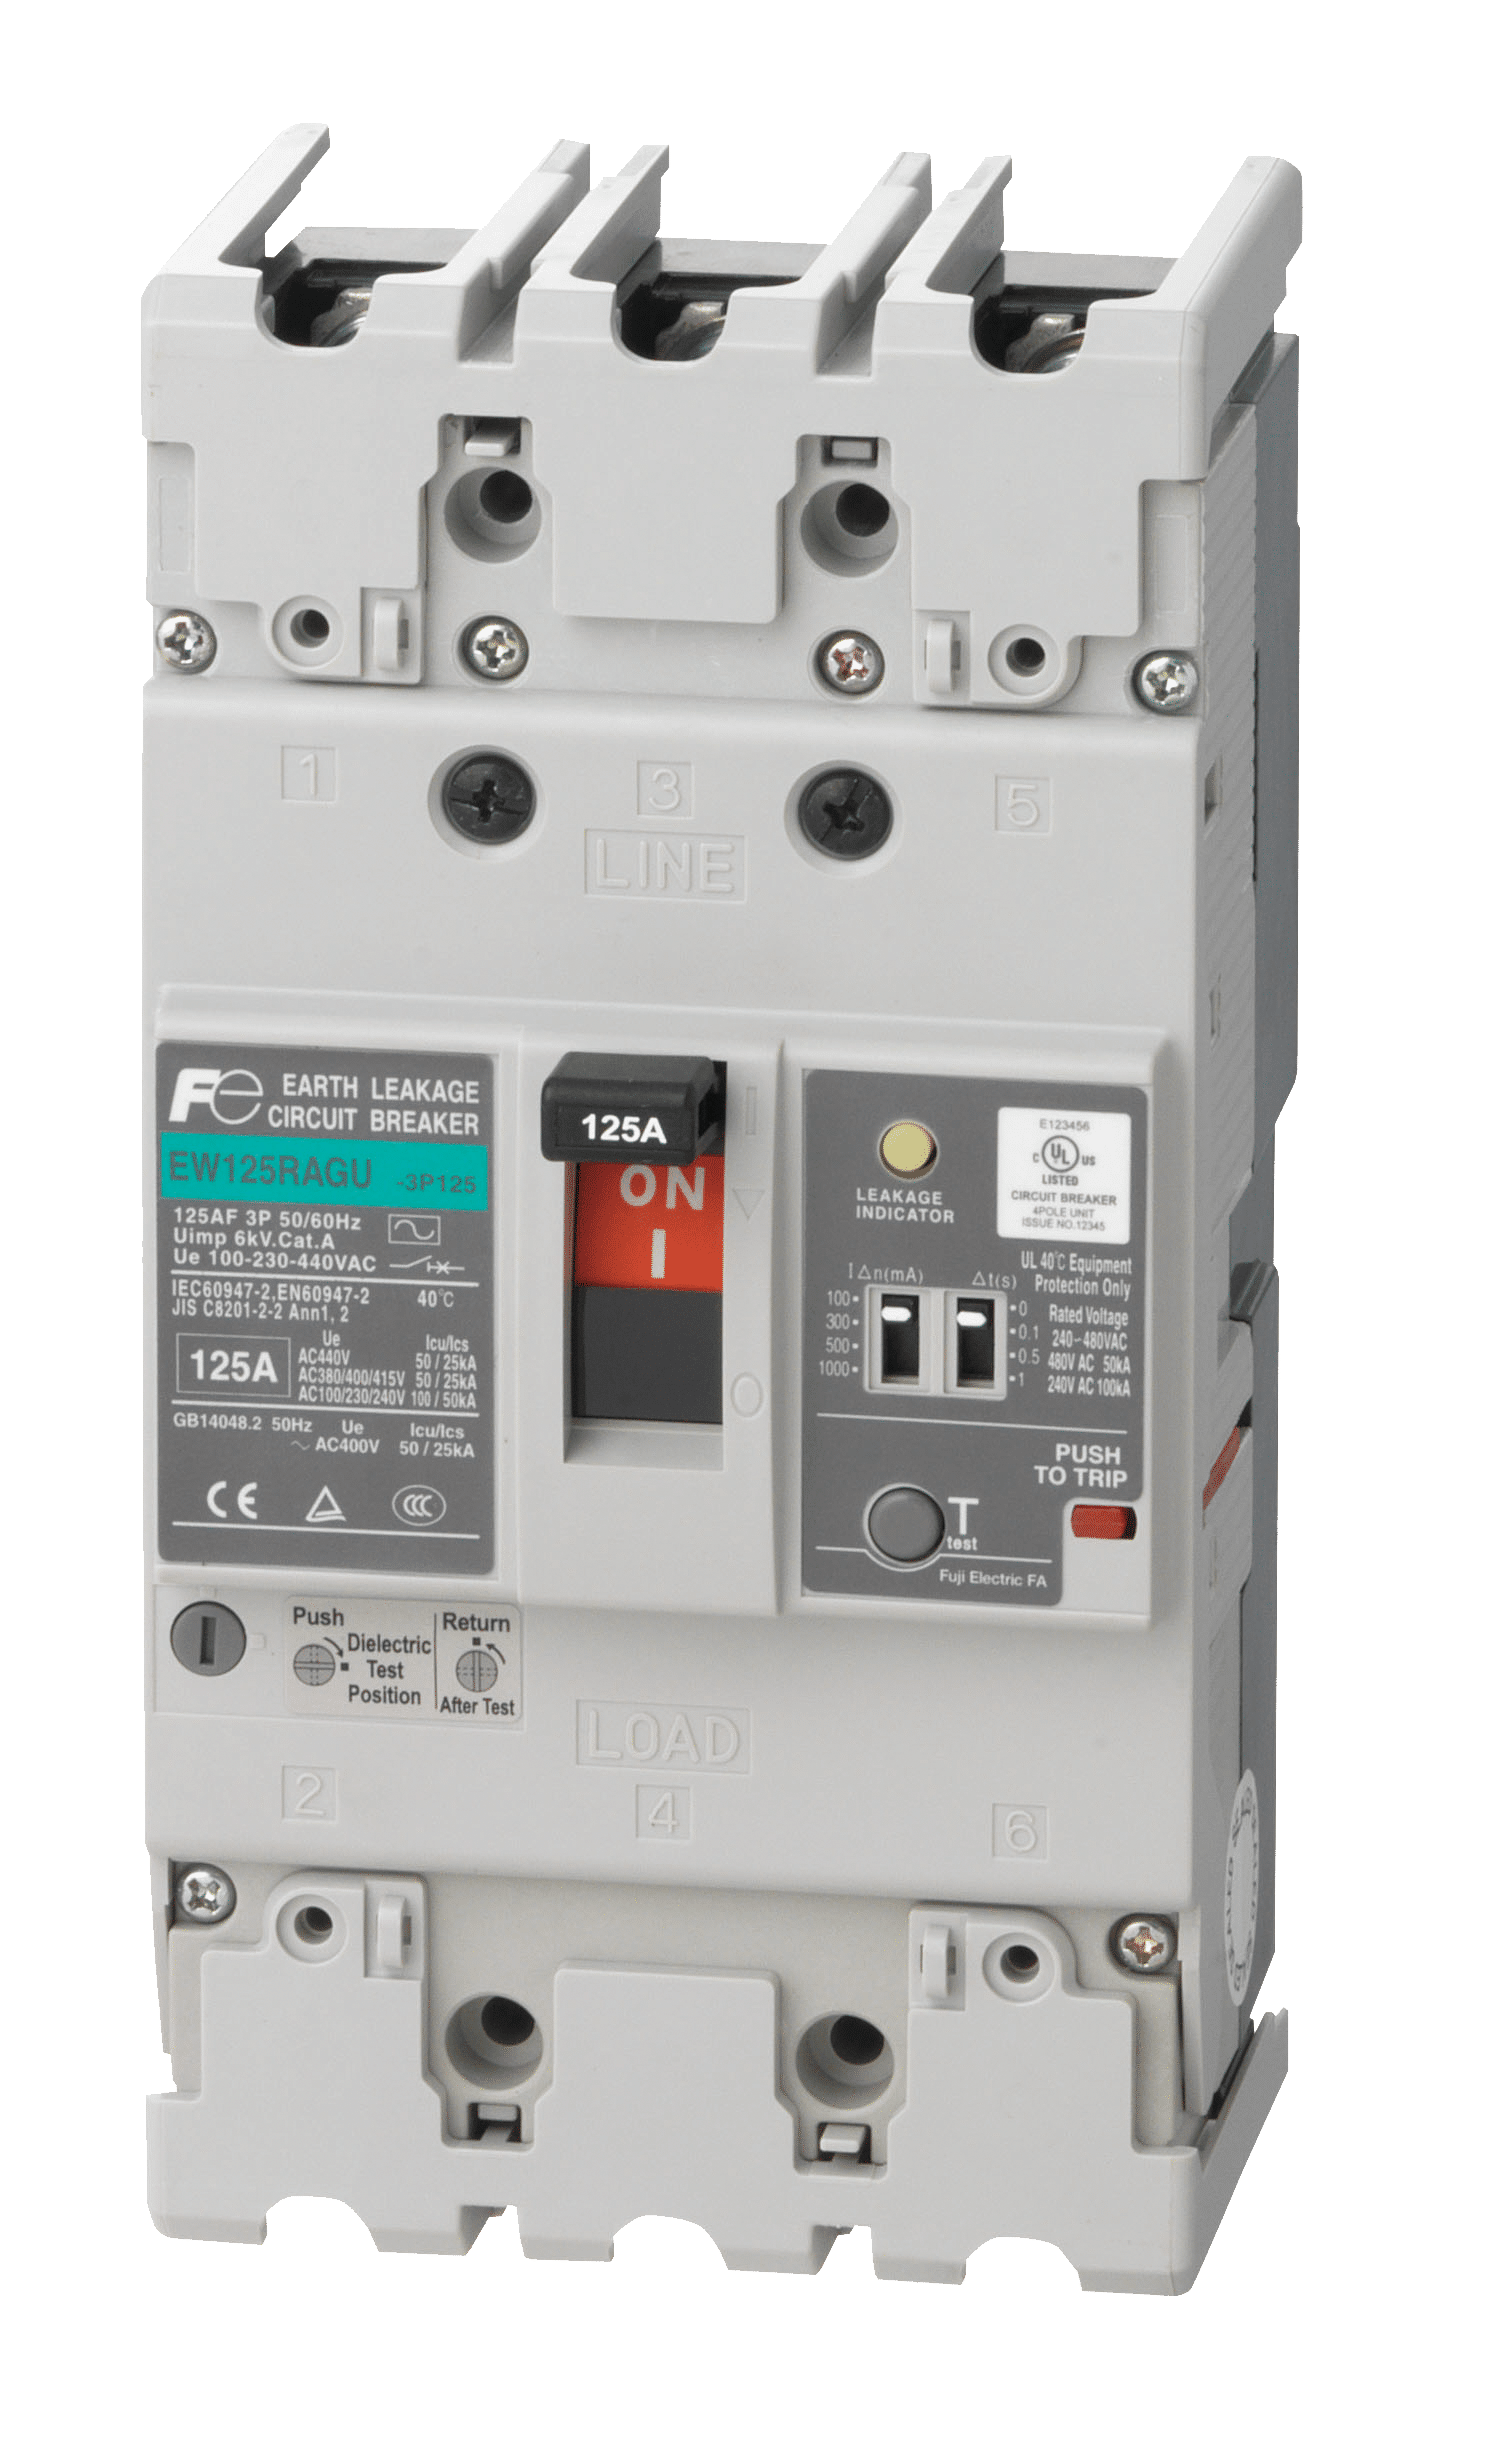 earth leakage circuit breakers (elcb)